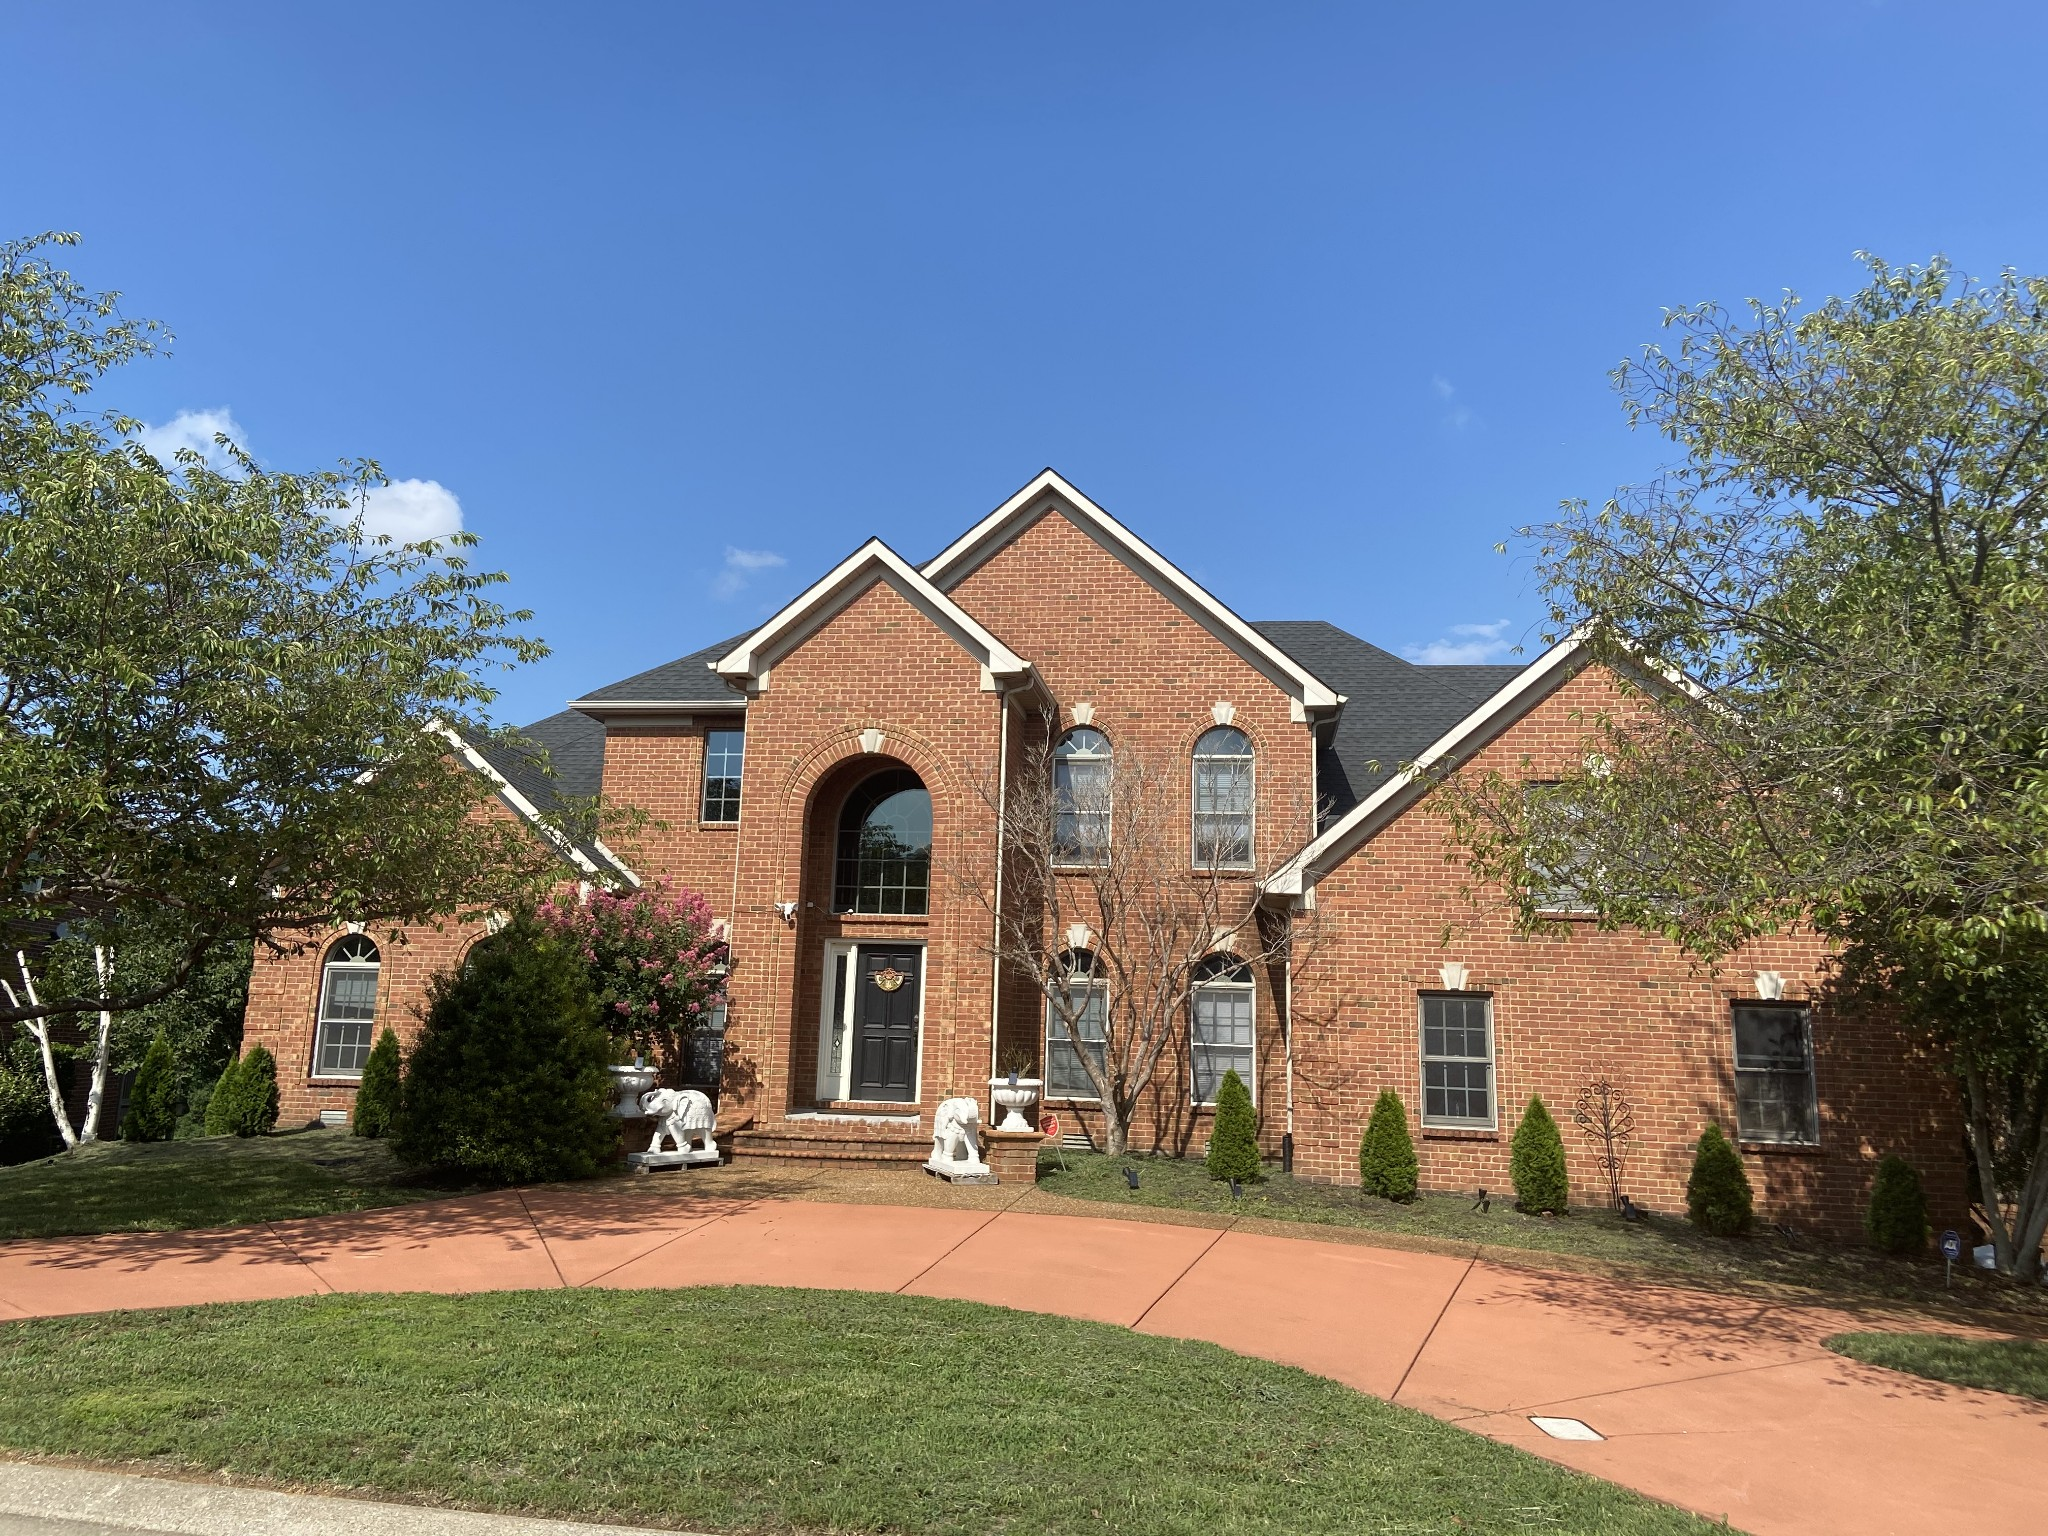 2609 Sequoya Trce Property Photo - Murfreesboro, TN real estate listing